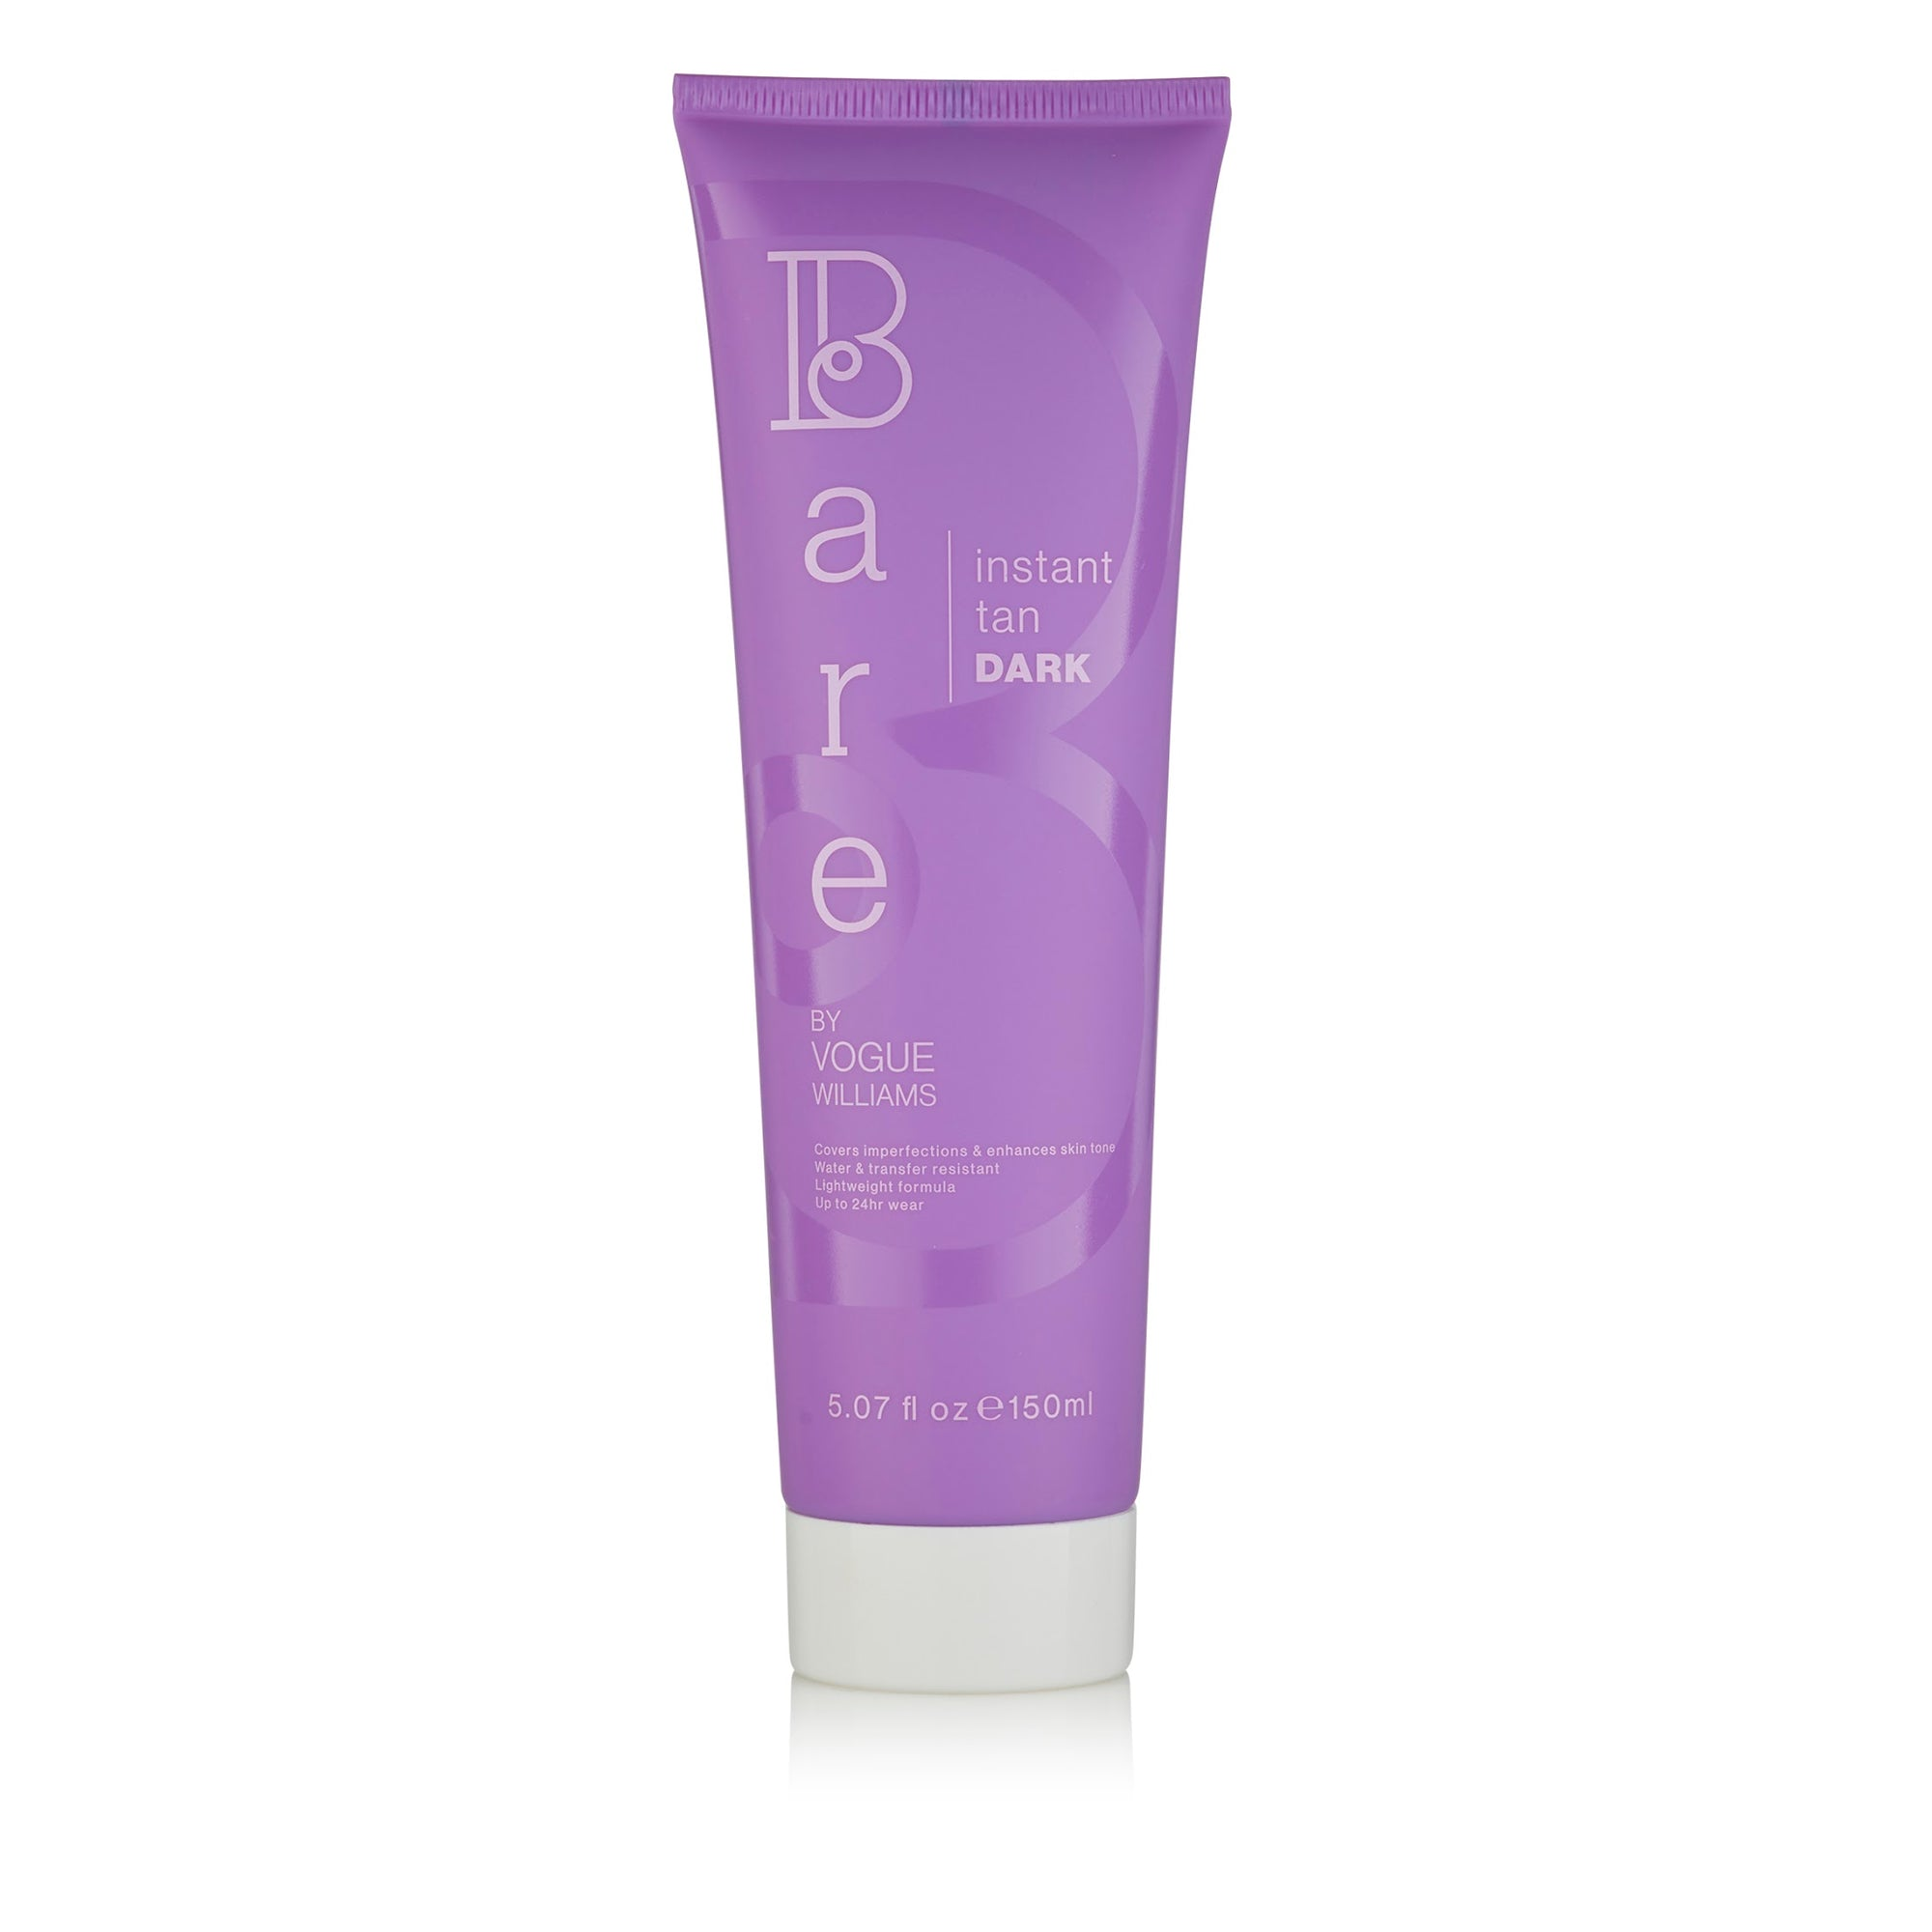 Bare by Vogue - Instant Tan - Dark - 150ml